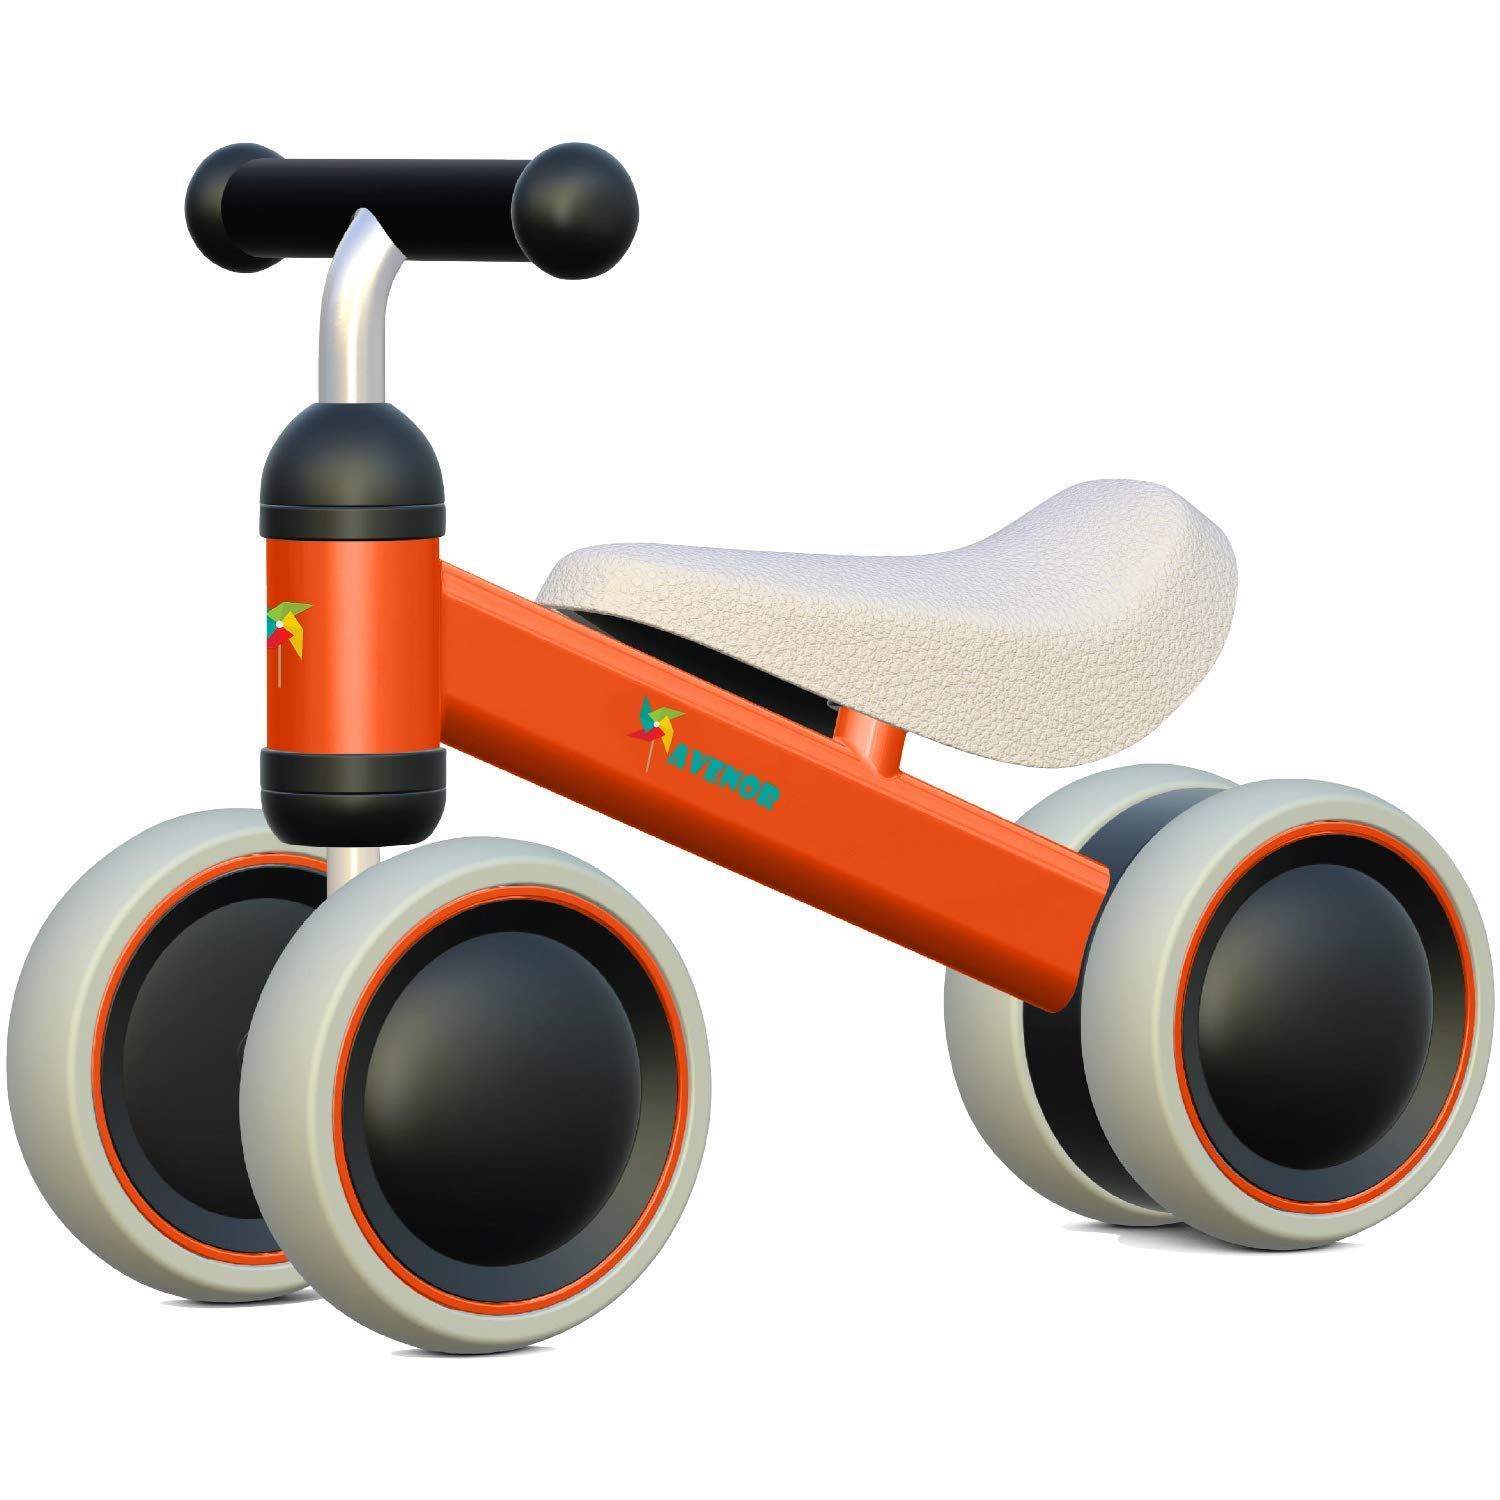 Avenor Baby Balance Bike - Baby Bicycle for 6-24 Months, Sturdy Balance Bike for 1 Year Old, Perfect as First Bike or Birthday Gift, Safe Riding Toys for 1 Year Old Boy Girl Ideal Baby Bike (Orange) by Avenor